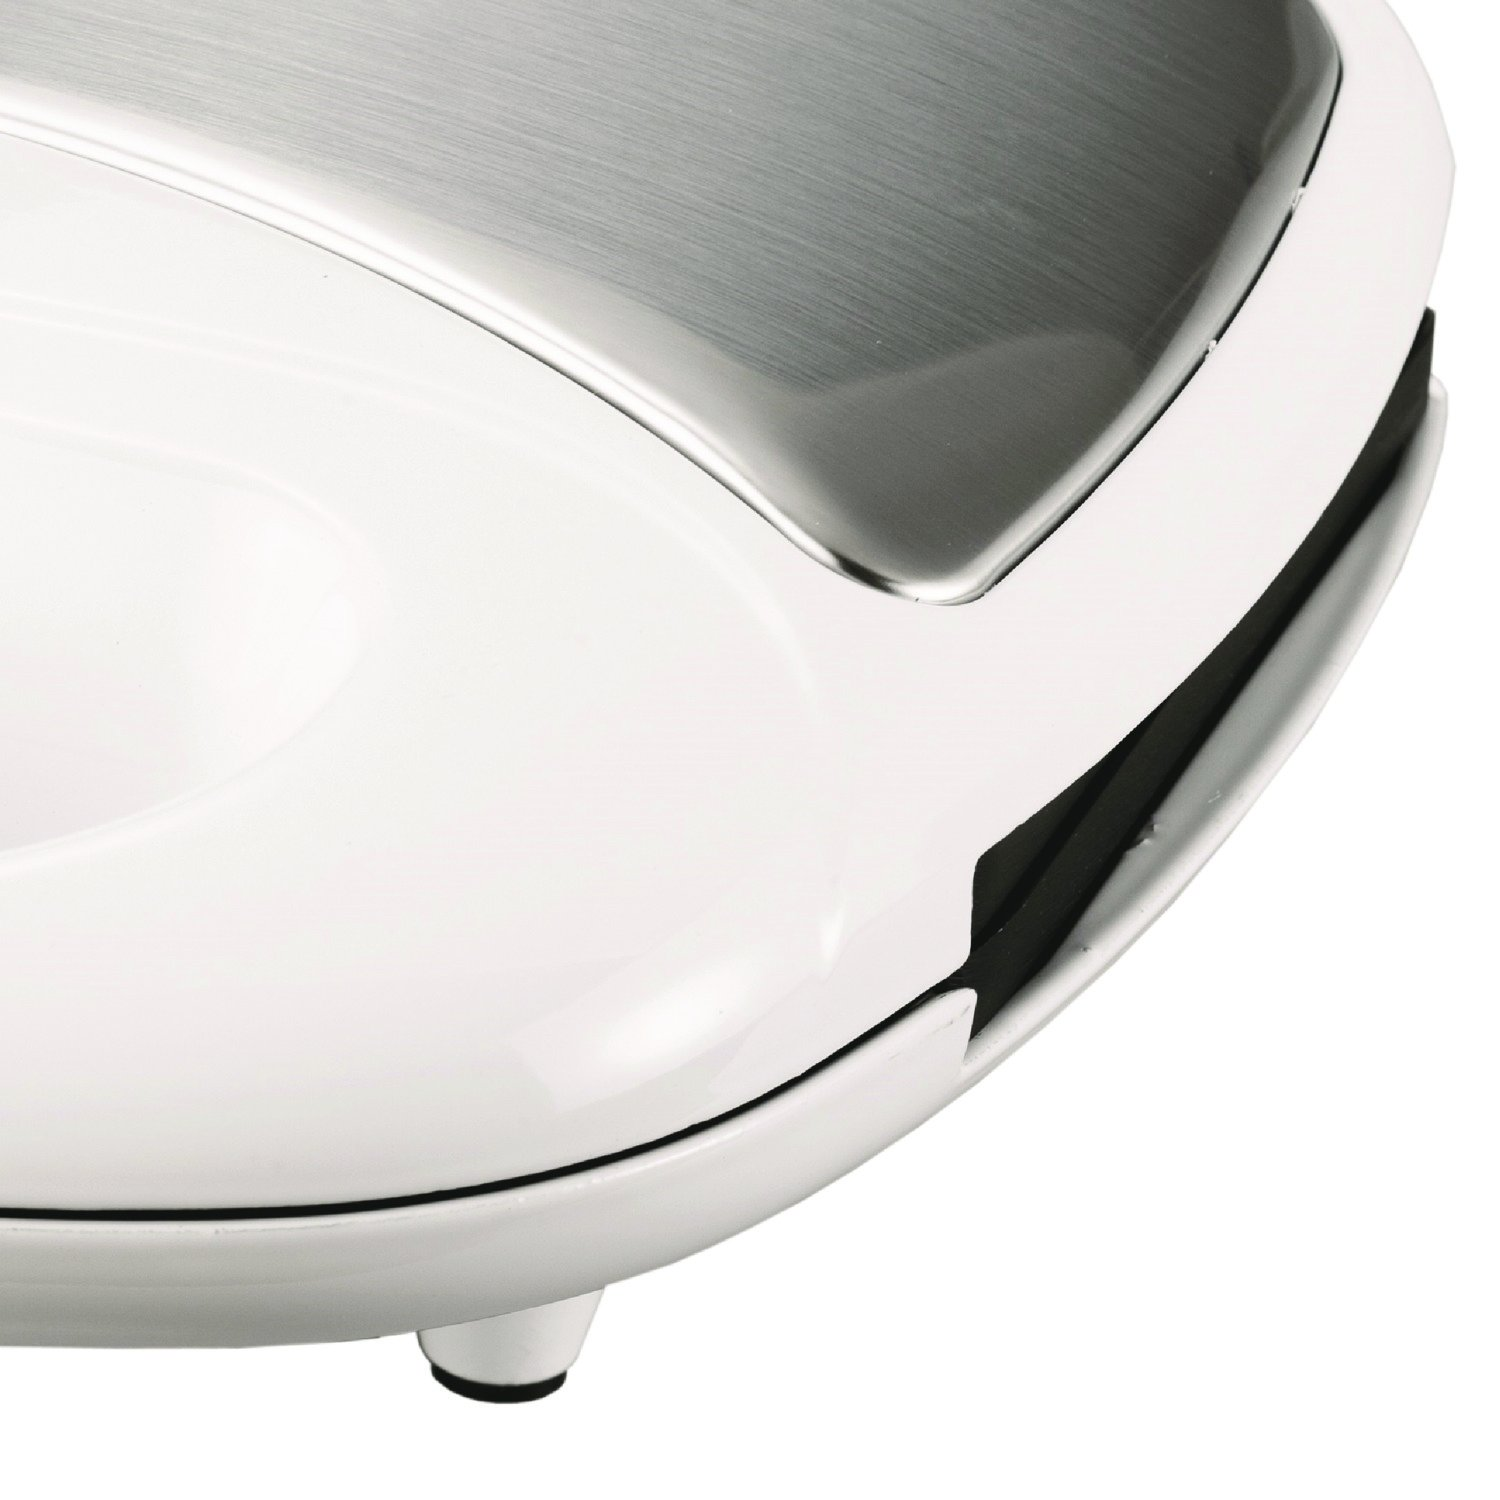 Brentwood TS-245 Non-Stick Panini Maker by Brentwood (Image #10)